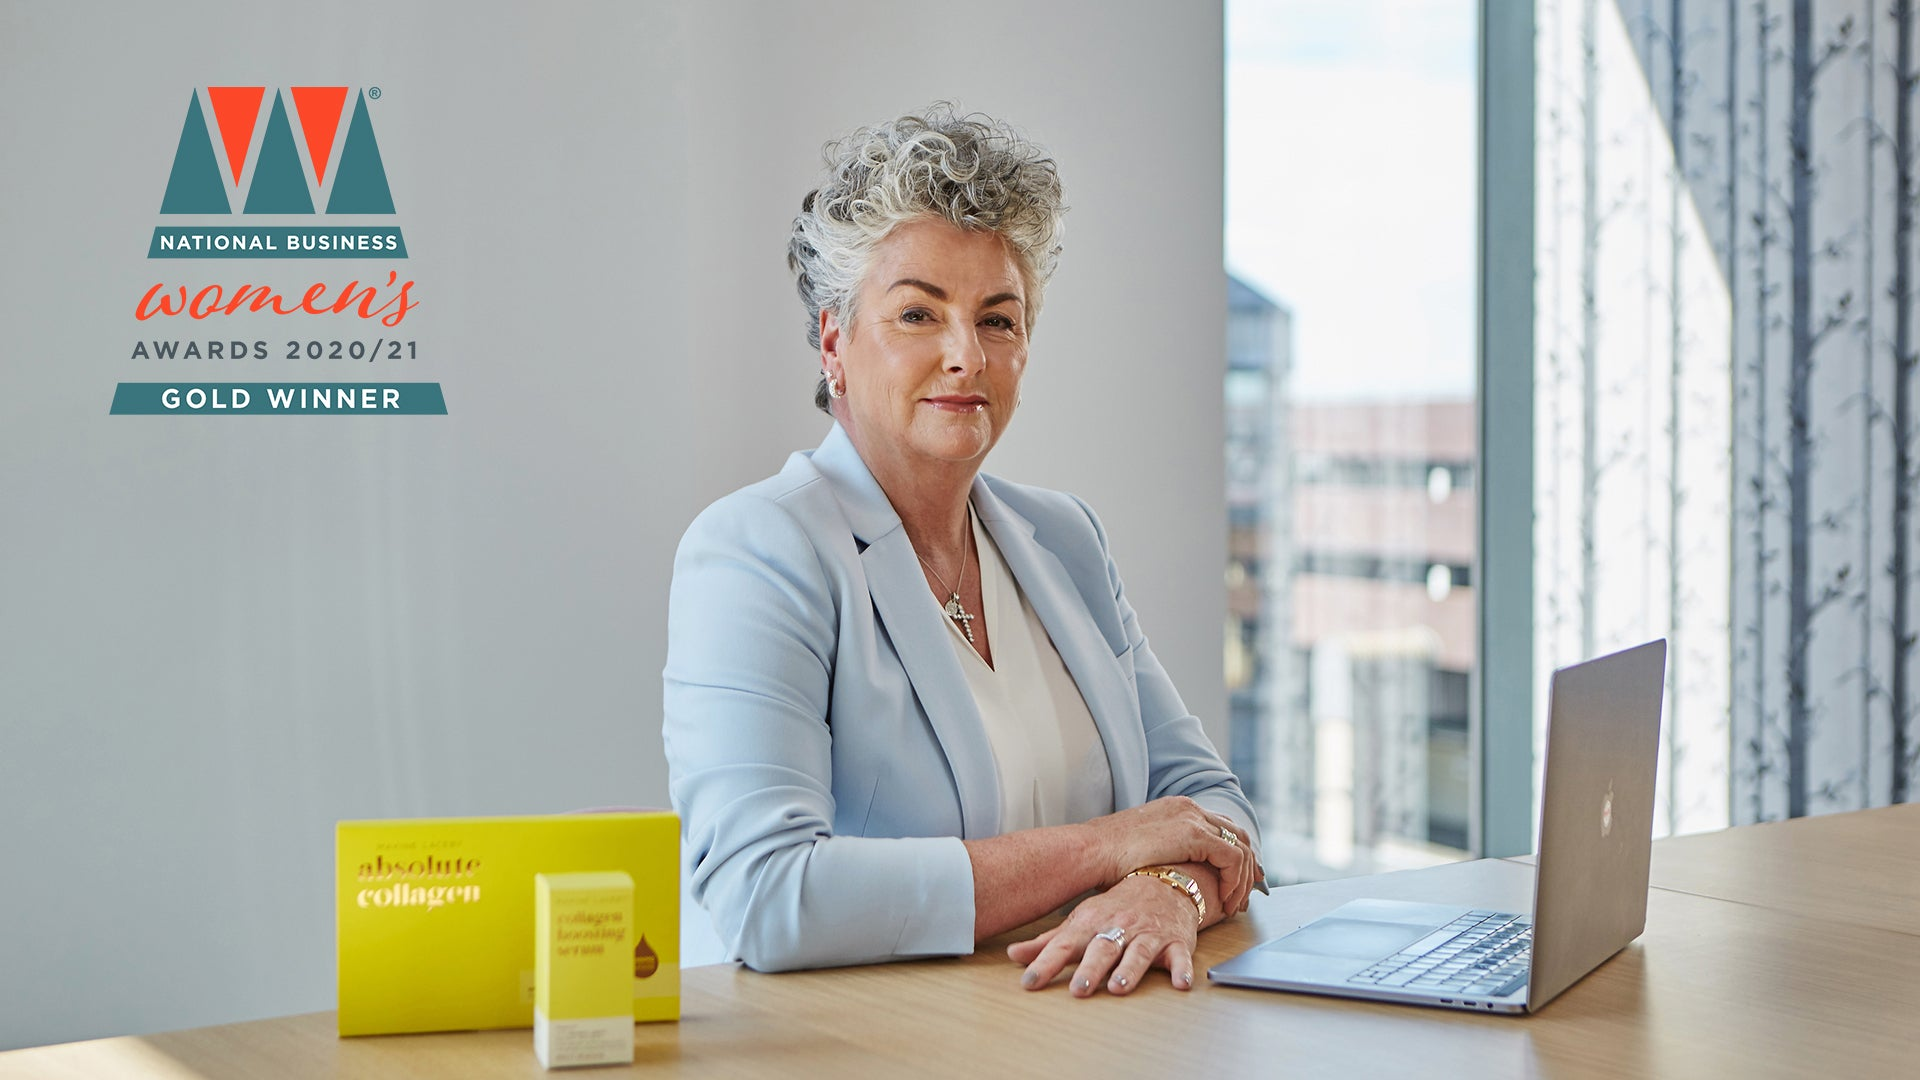 Photo showing Maxine Laceby wearing a pale blue blazer and sitting at a desk, she is looking at the camera and the National Business Woman Gold Winner logo is superimposed on the image to the left of her